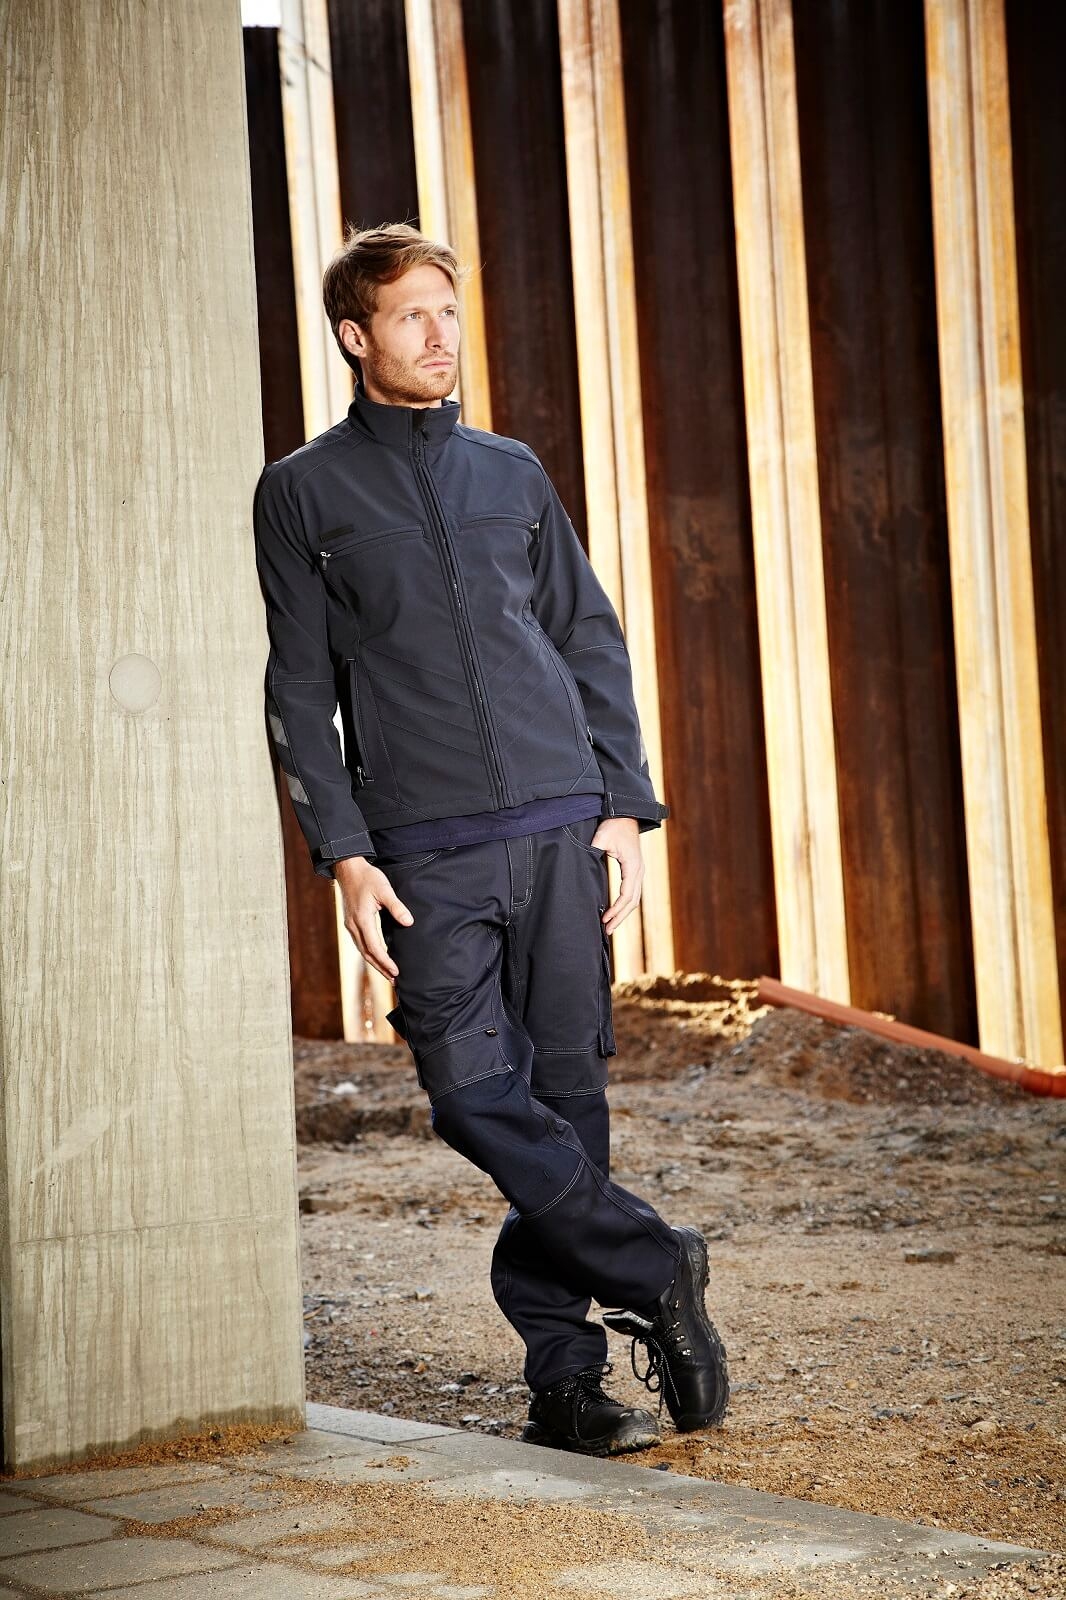 Softshell Jacket & Work Pants - Navy - Environment - MASCOT® UNIQUE